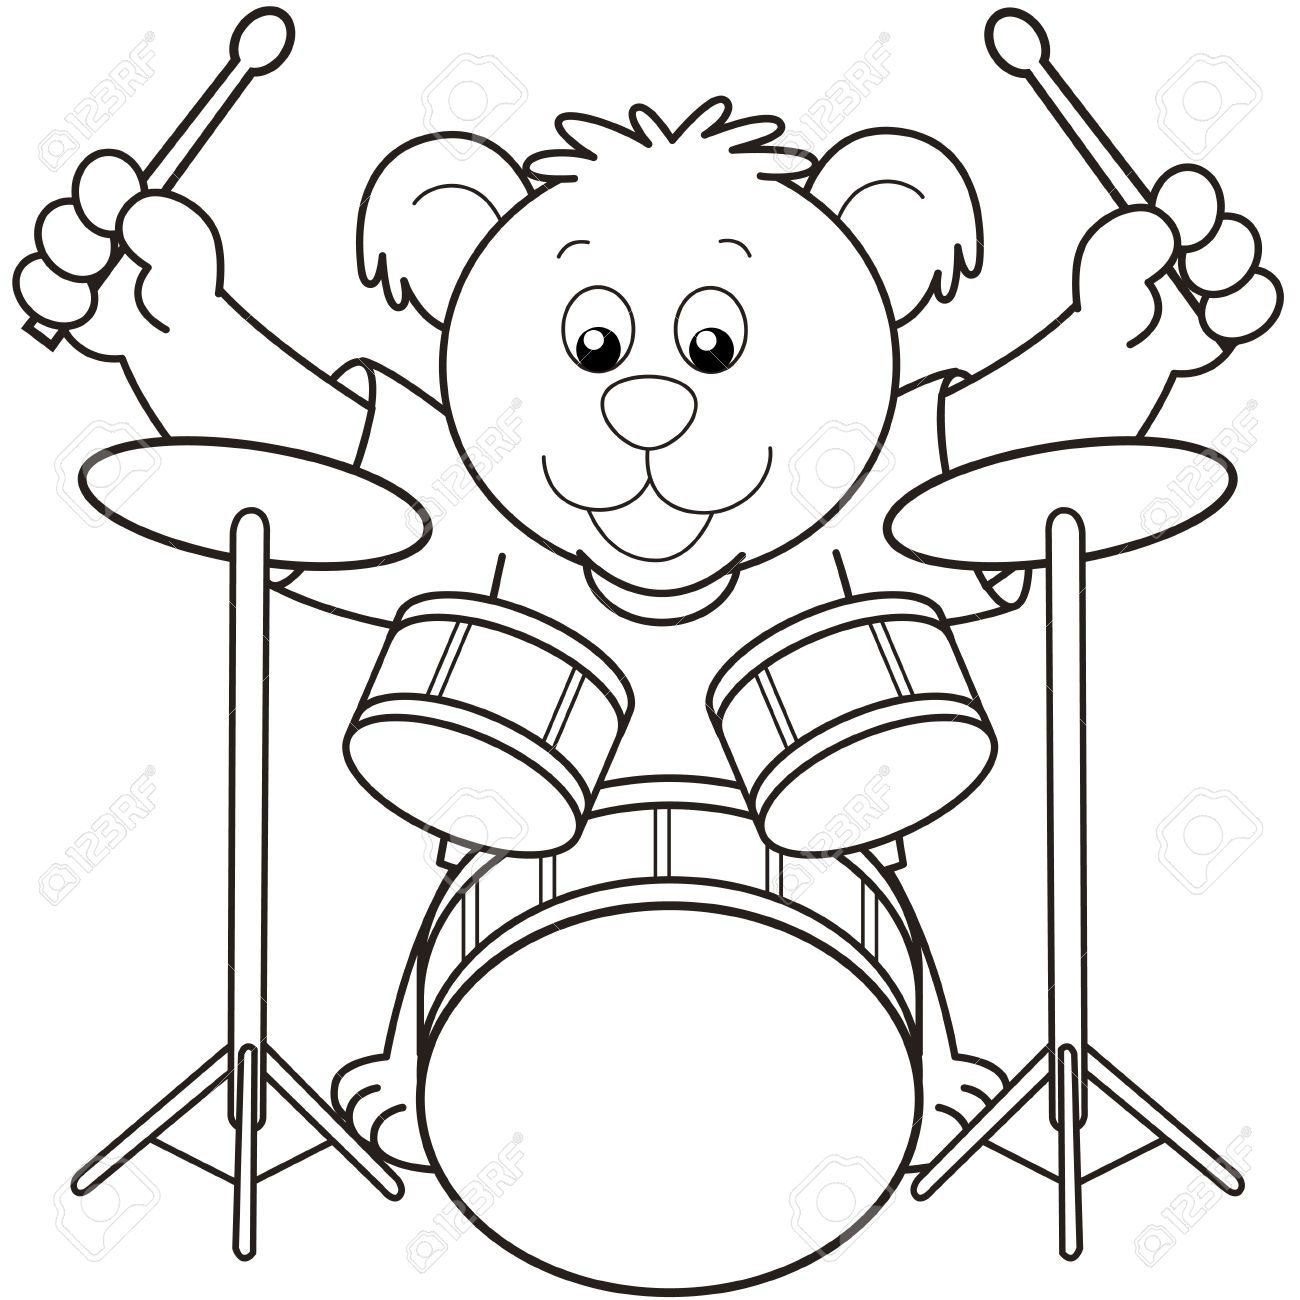 Coloring pictures drums - Cartoon Bear Playing Drums Black And White Stock Vector 18630065